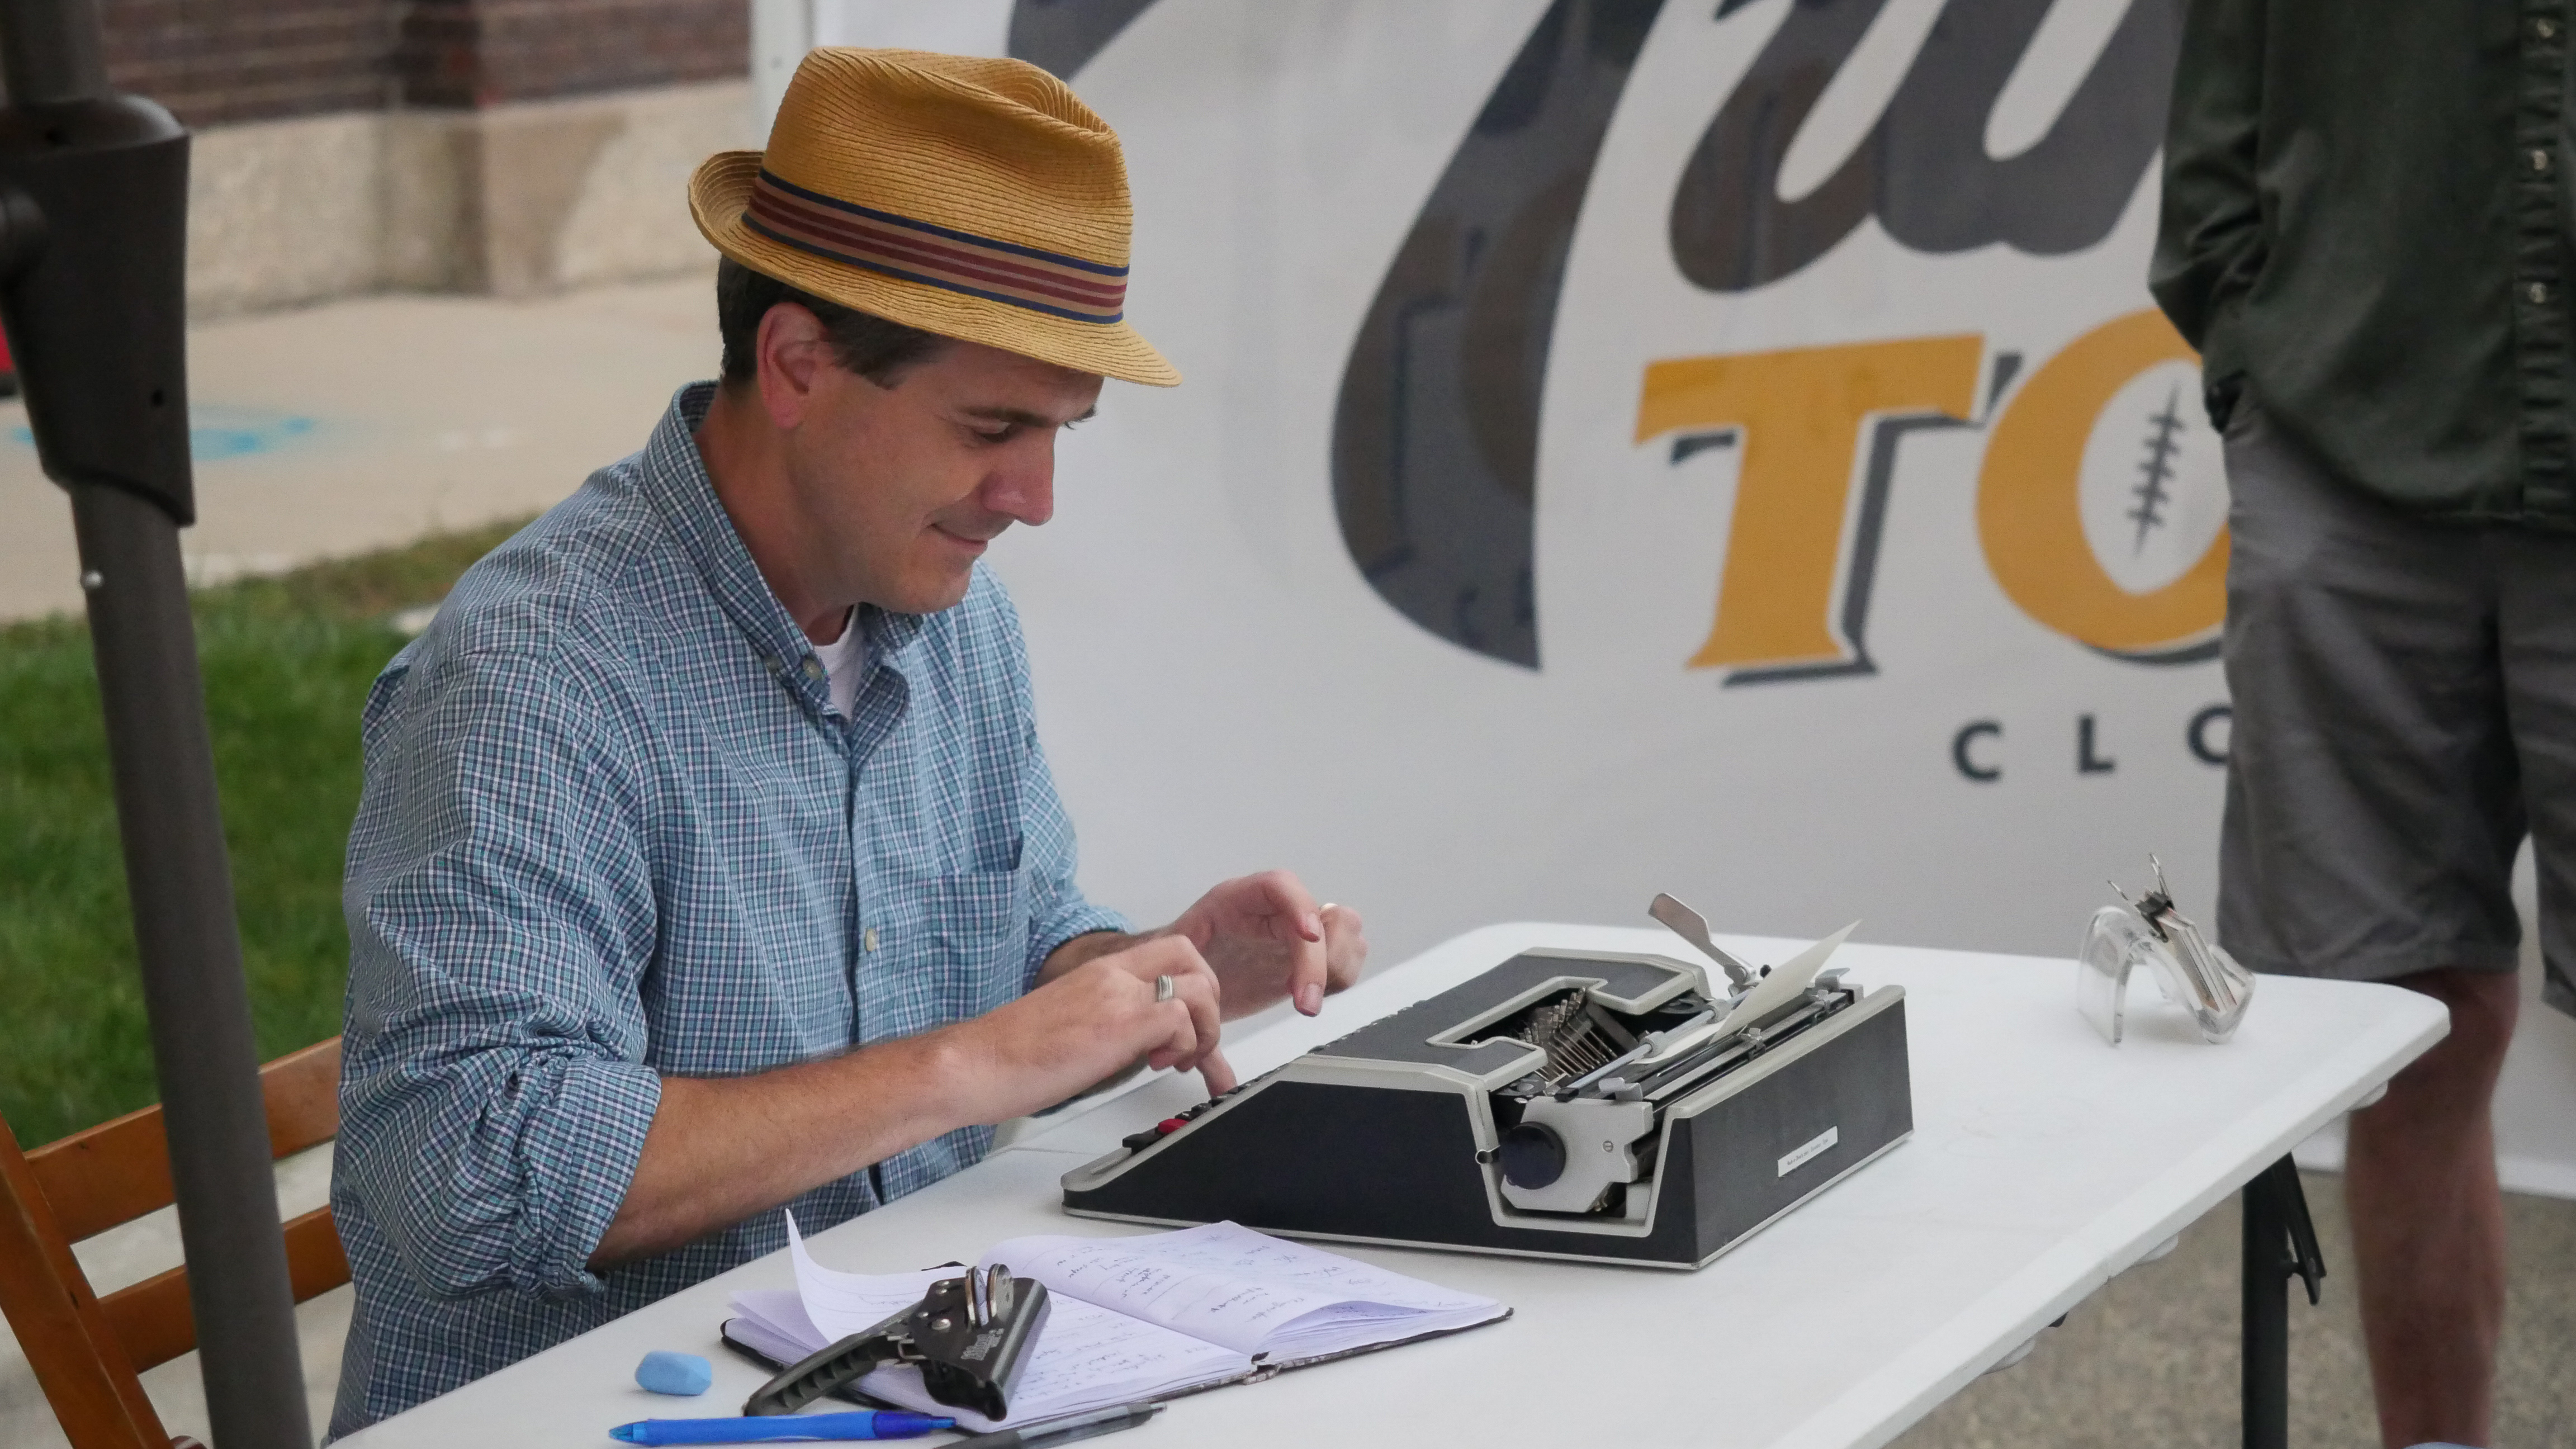 Original poetry being typed out right in front of you, during the IgNight Market in downtown Green Bay, Saturday, September 21, 2019 (WCWF/ Beni Petersen)